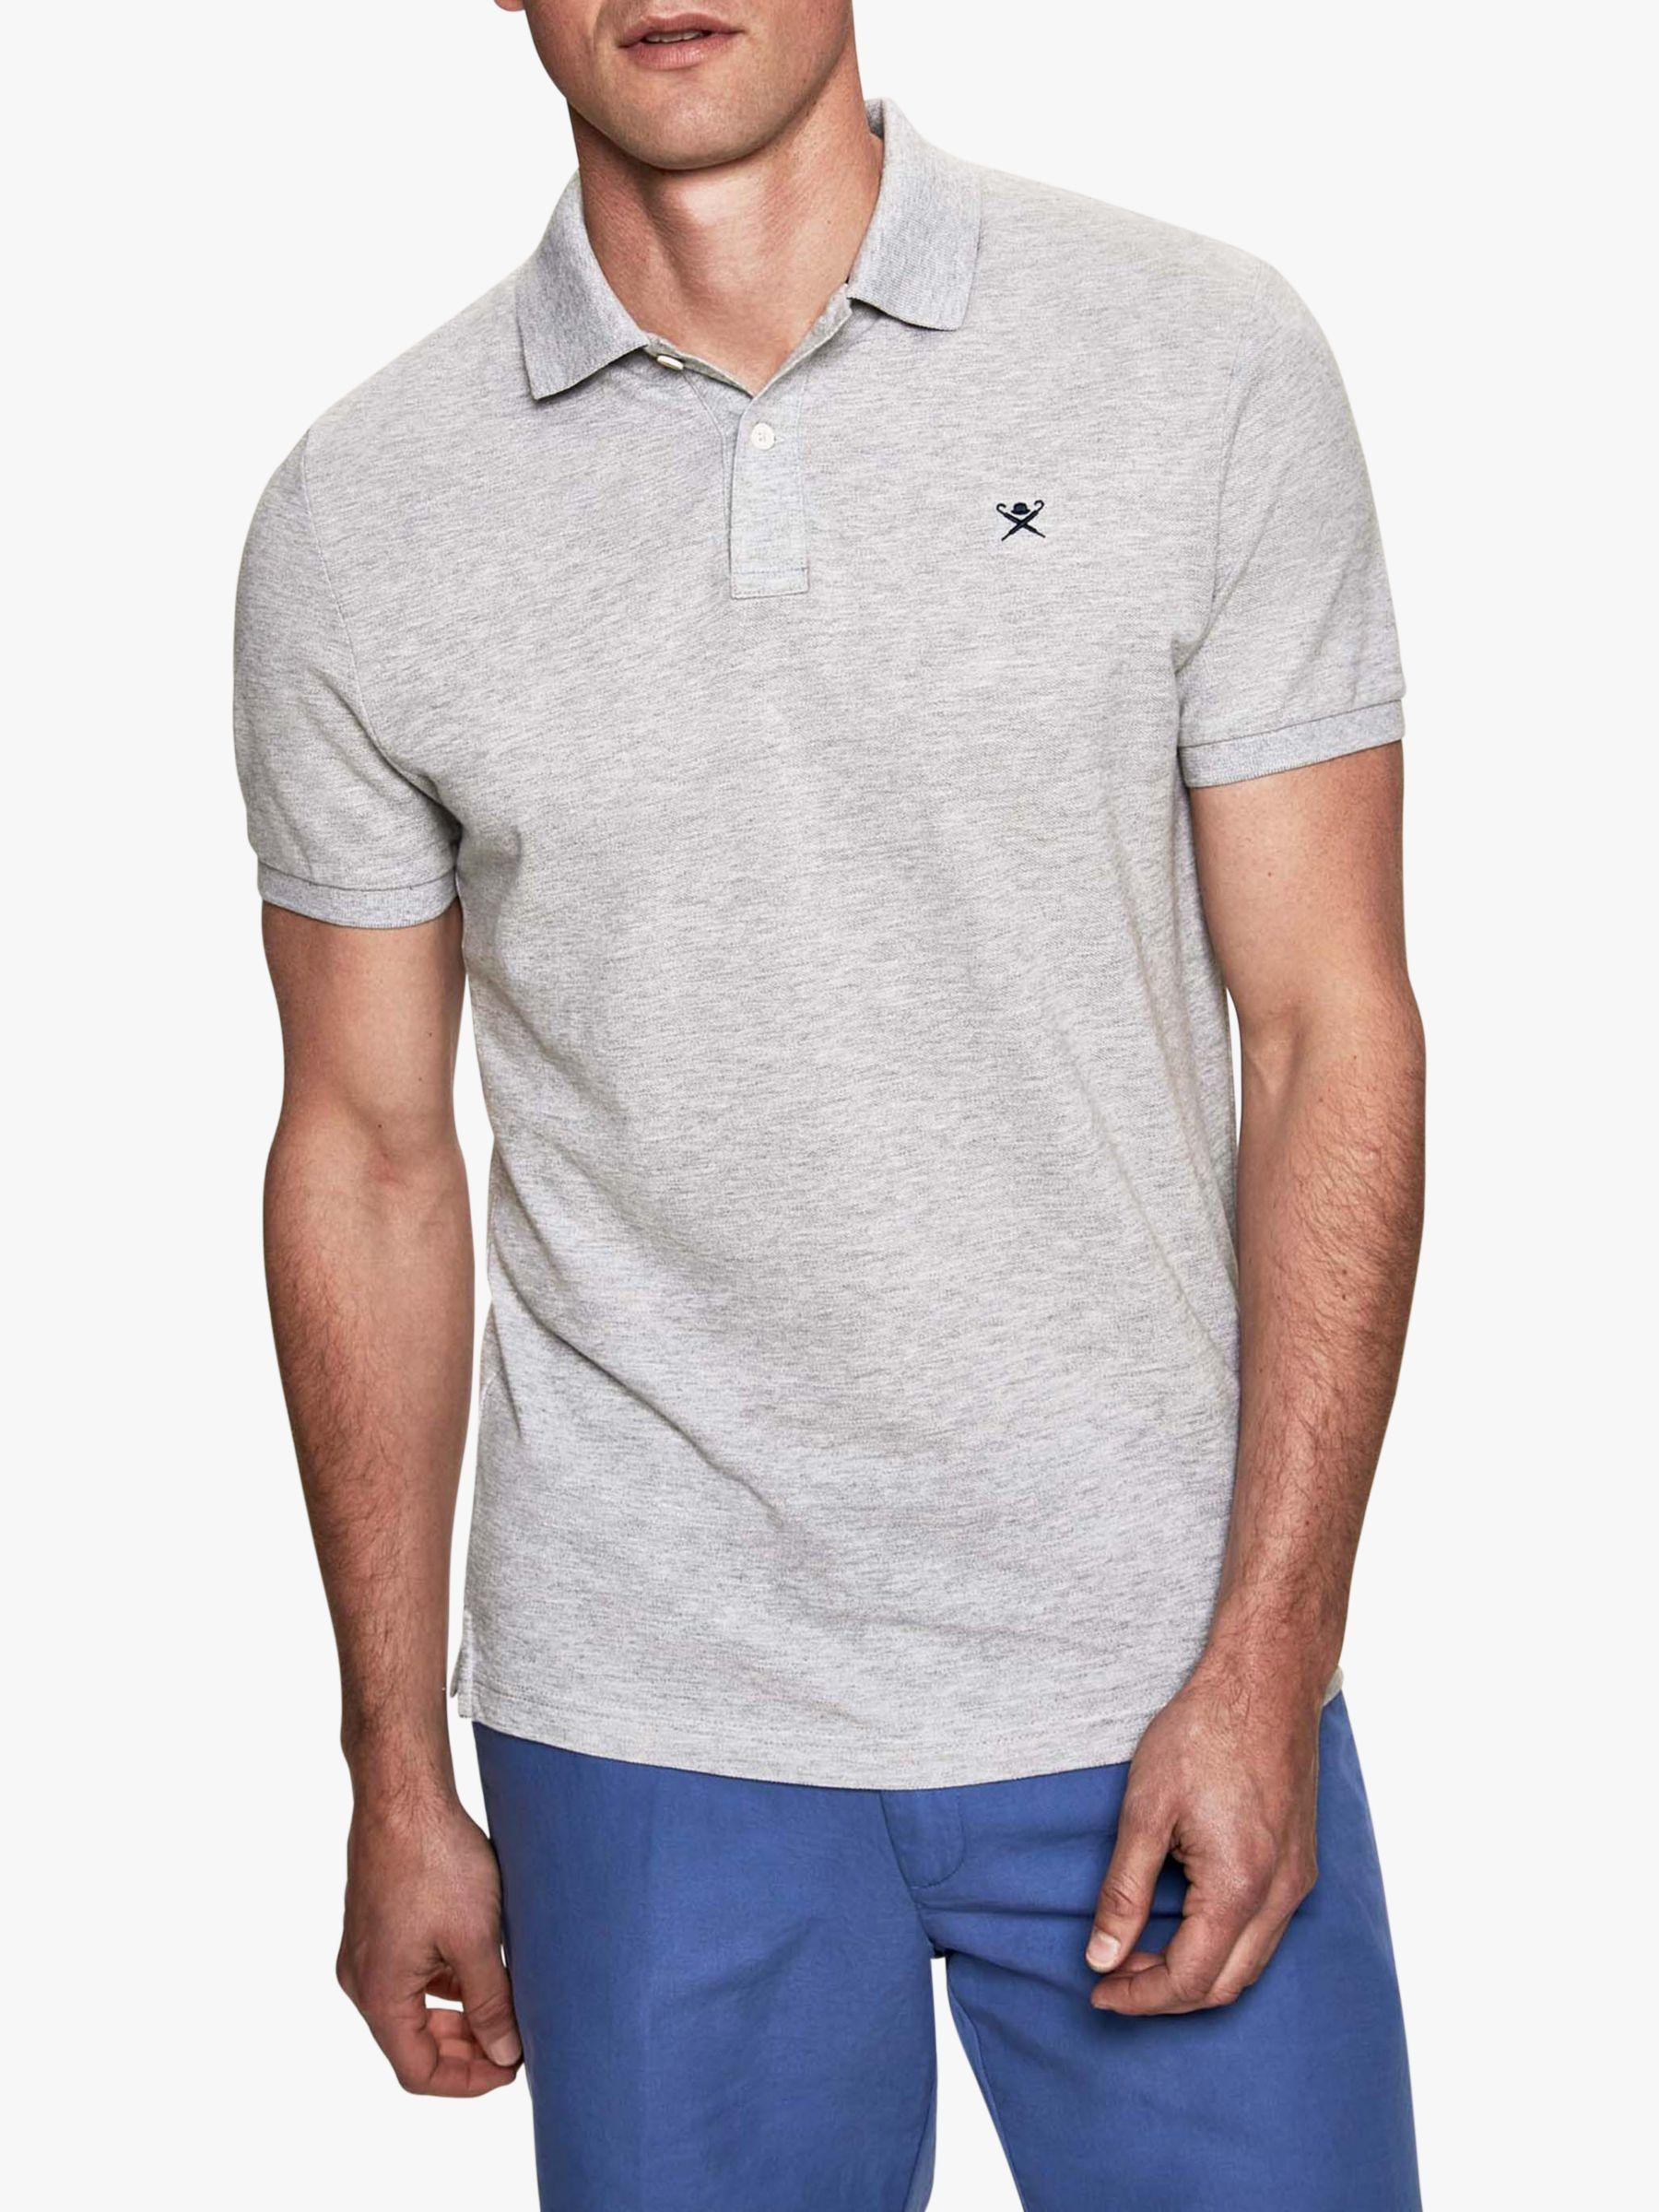 62dd2fc629f Hackett Slim Fit Logo Polo Shirt in Gray for Men - Lyst